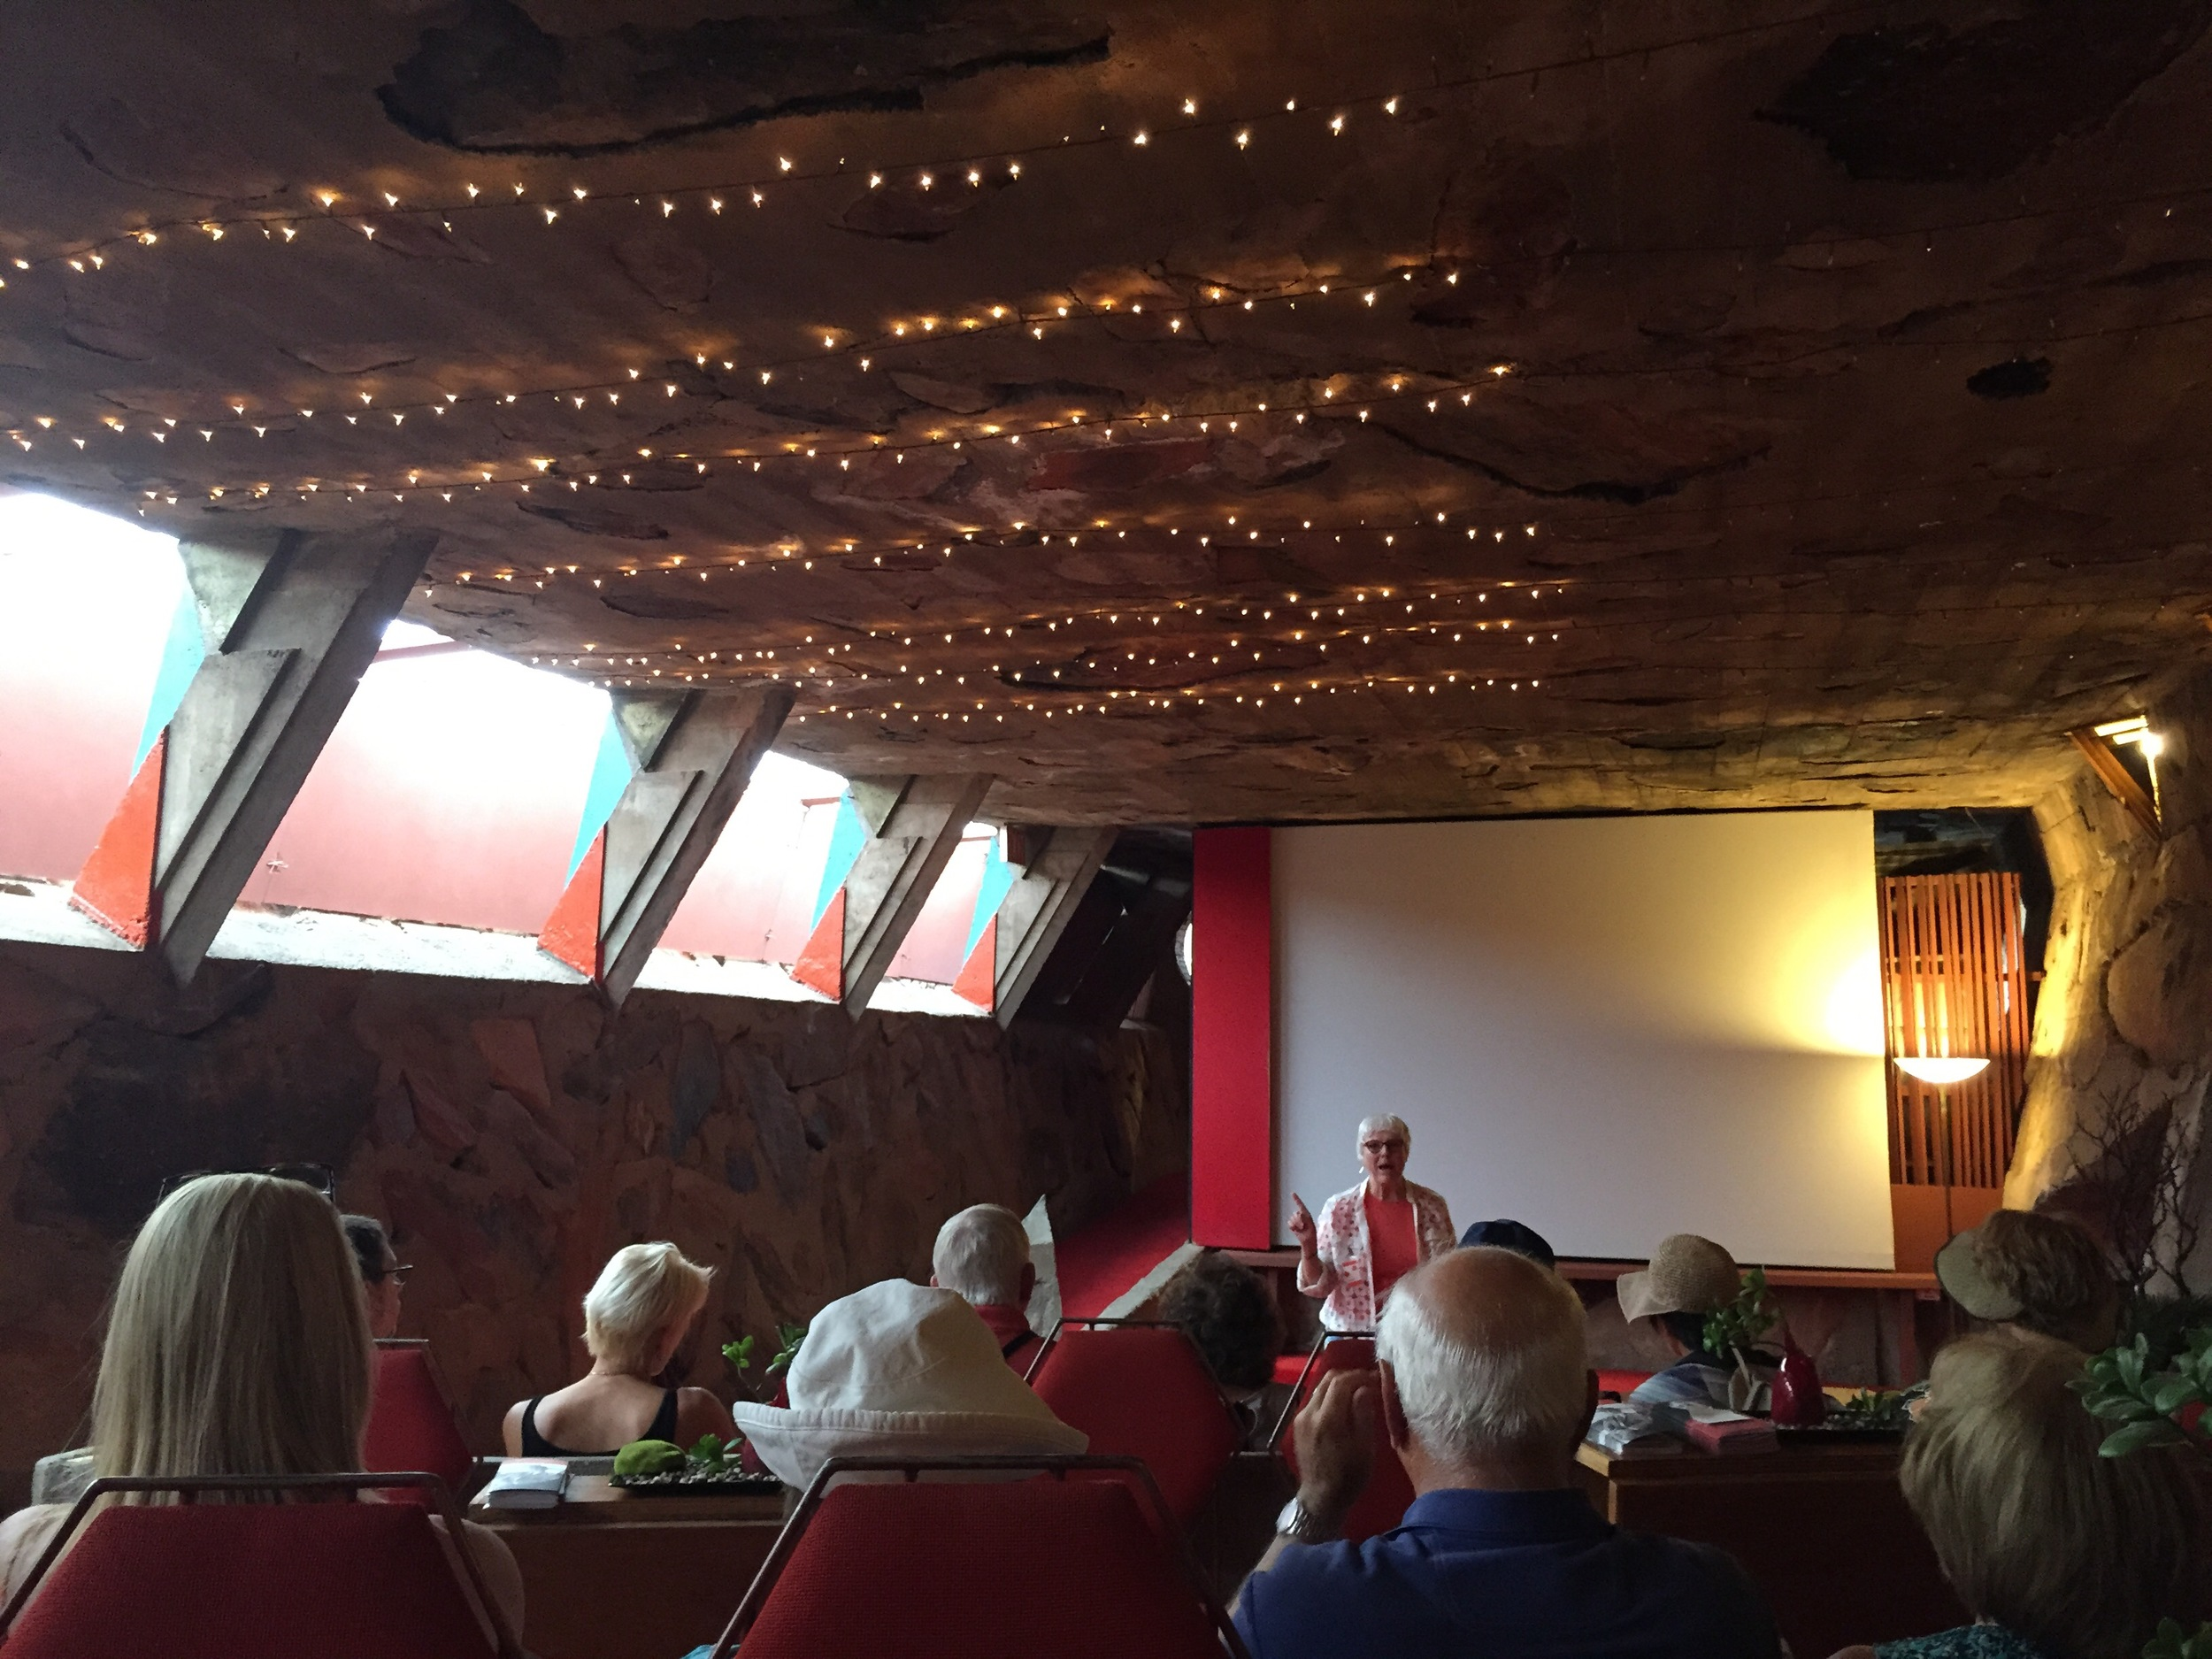 The movie theater Frank Lloyd Wright designed and built